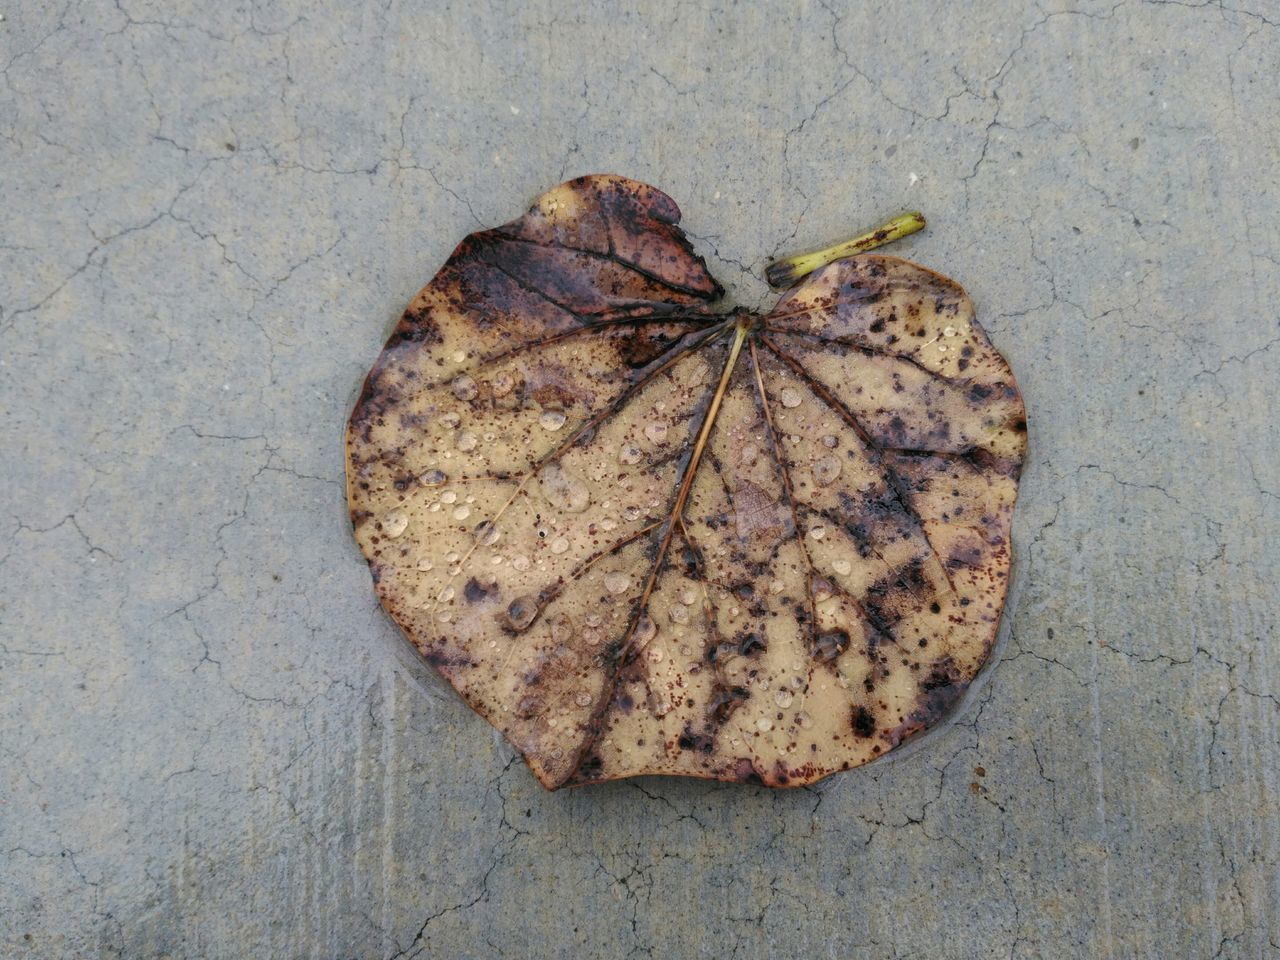 leaf, autumn, high angle view, no people, day, change, close-up, food, outdoors, nature, freshness, maple